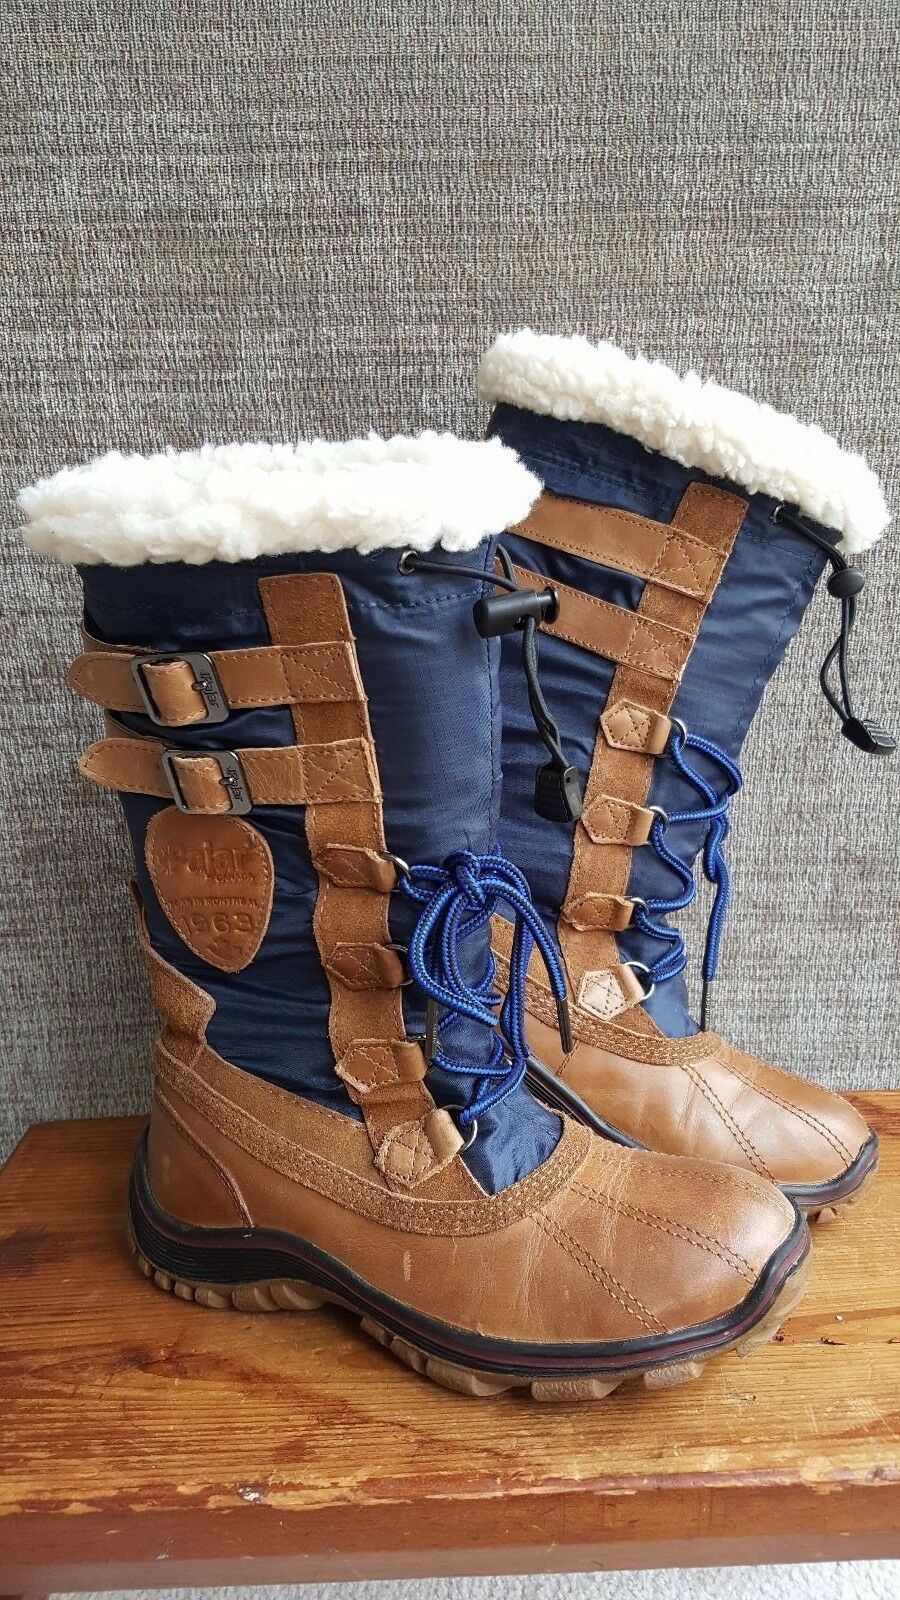 Pre-Owned Women's PAJAR ADRIANA Winter Boot, Sz 6 MED Brown & Navy, Retail  220